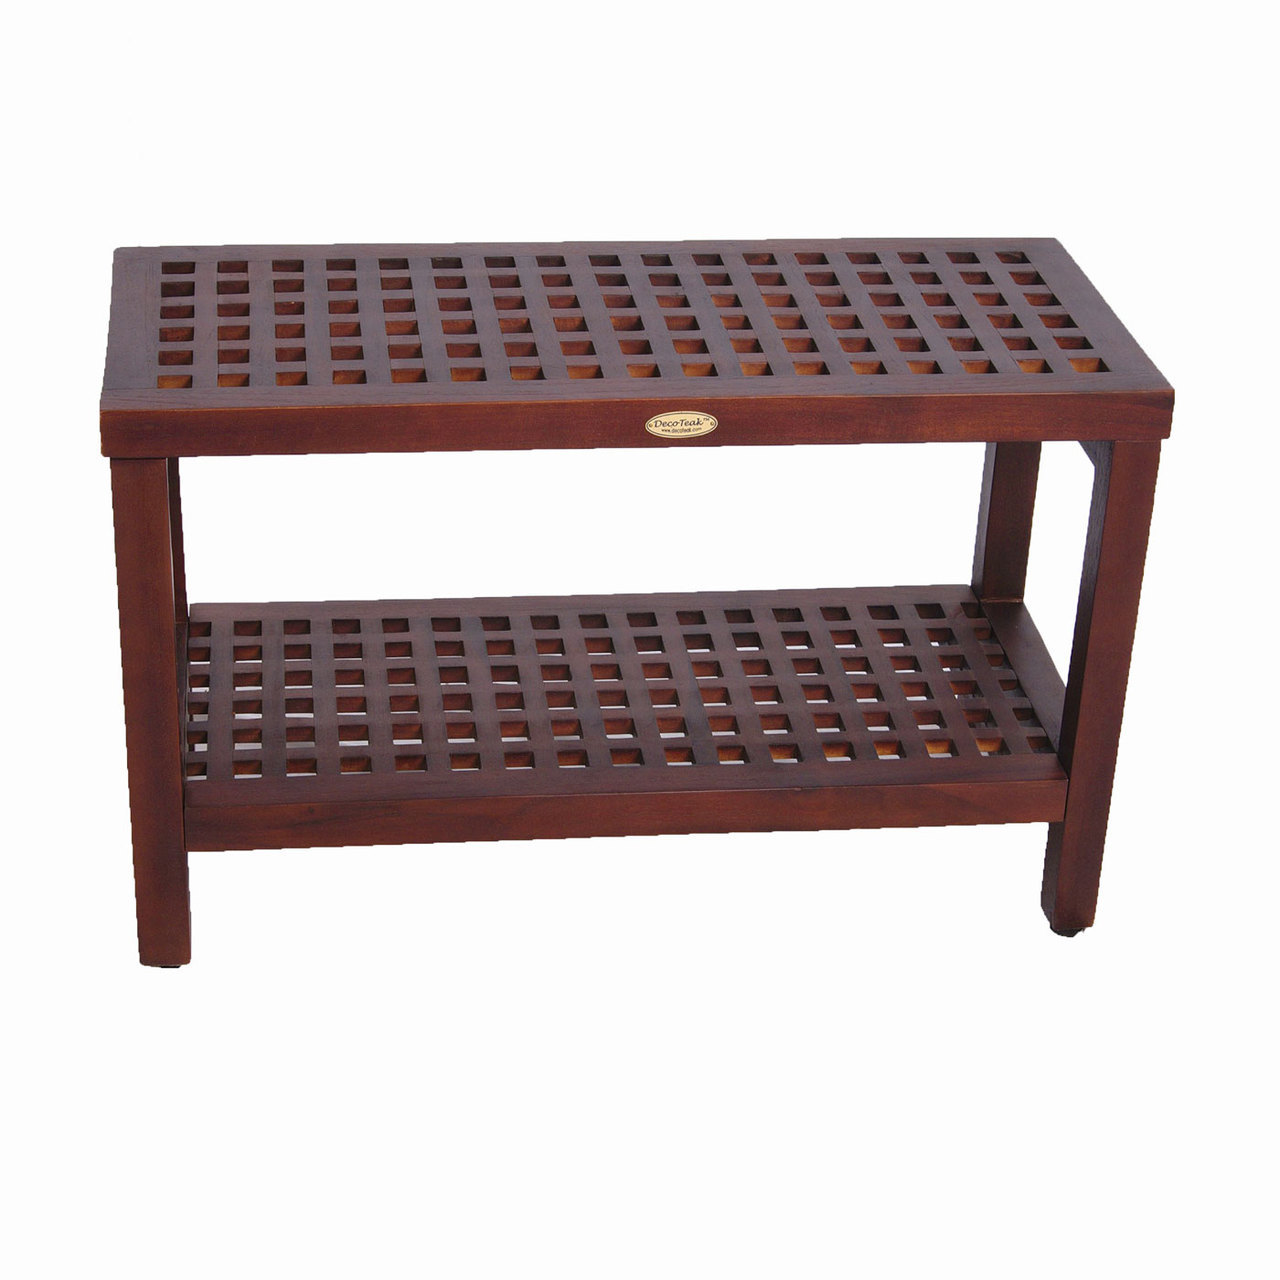 "Decoteak DT158 Espalier 30"" Lattice Teak Shower Bench with Shelf"